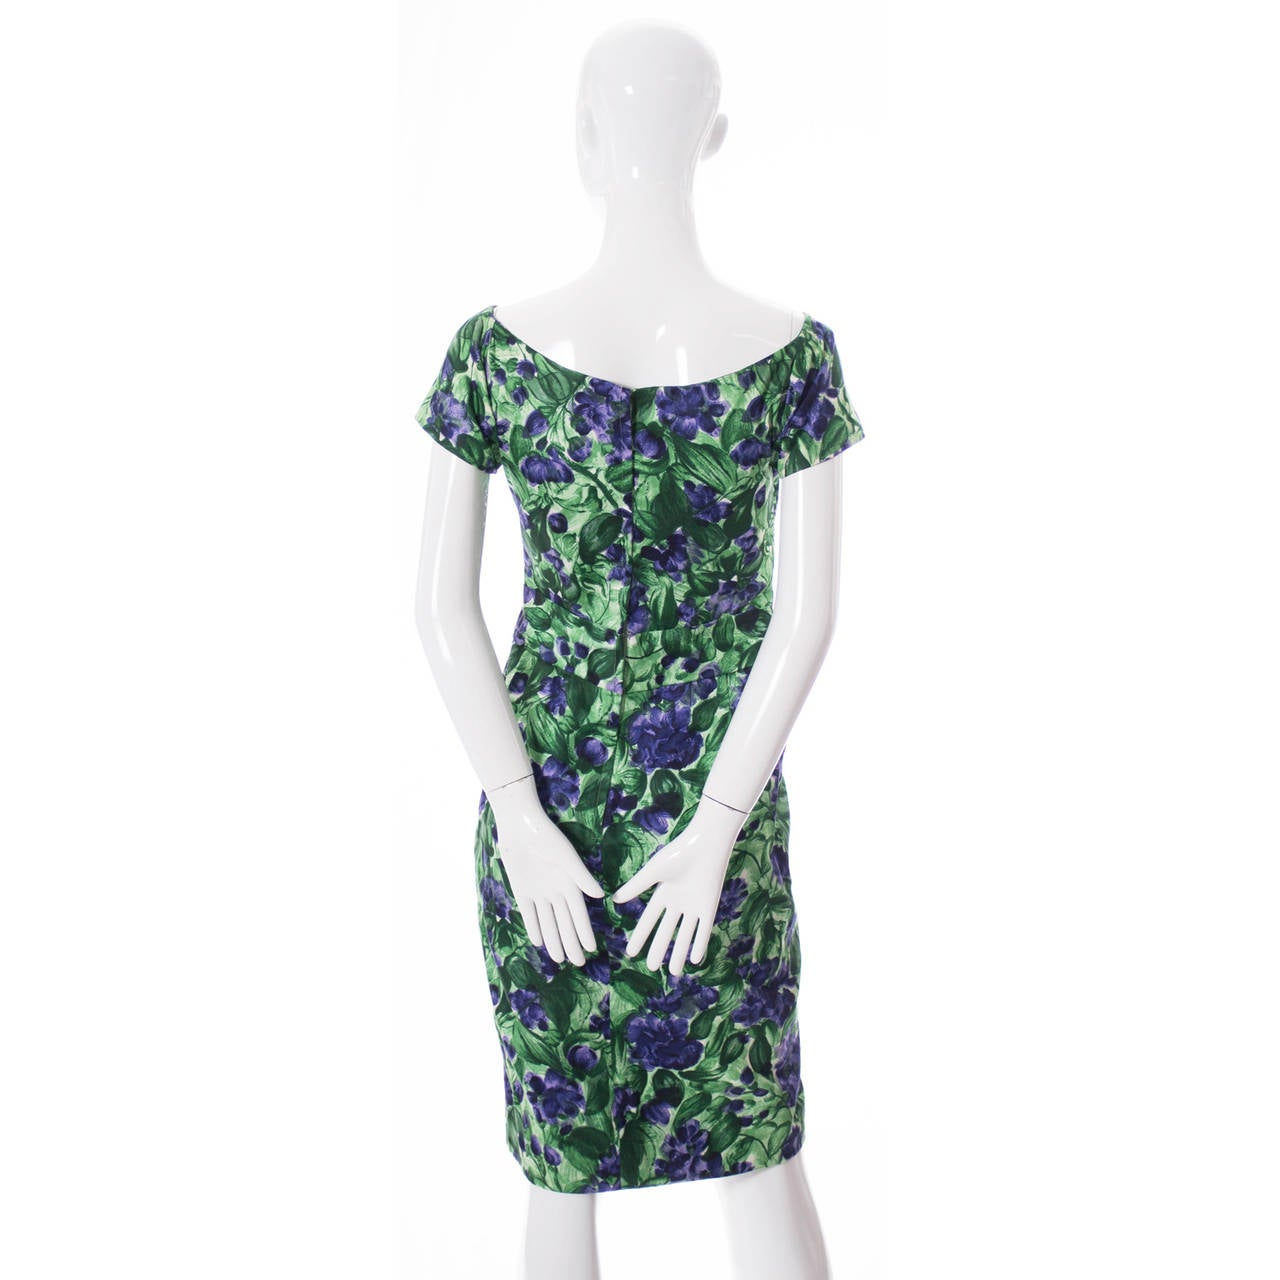 Vintage Ceil Chapman 1950s Dress in Purple Green Floral Silk Print In Excellent Condition For Sale In Portland, OR